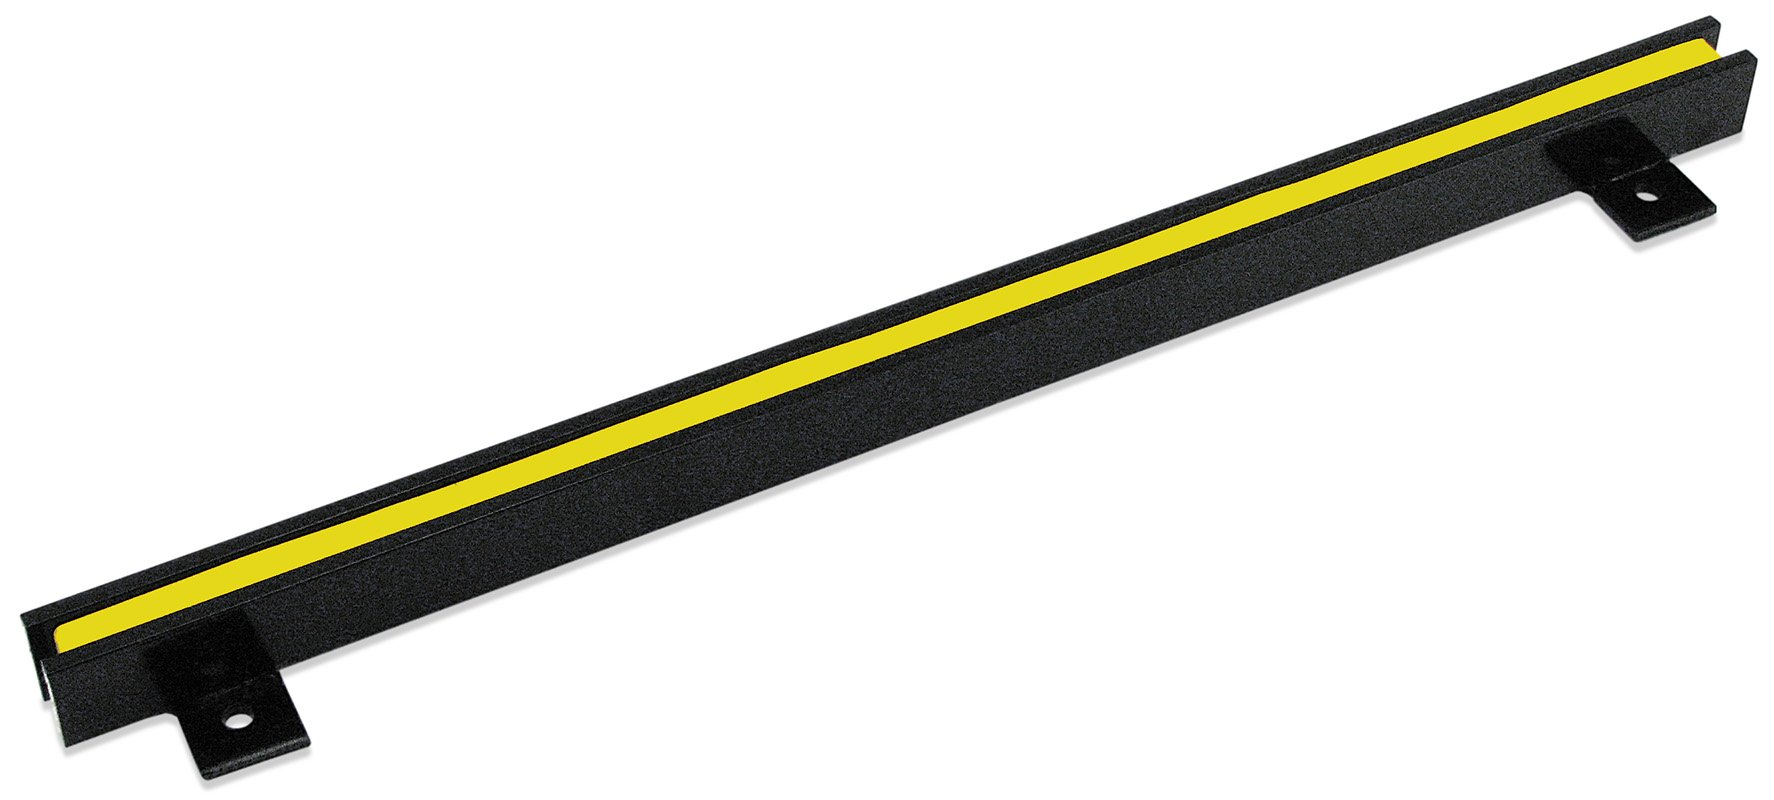 Master Magnetics Magnetic Tool Holder, 18'' Wide, 20 lb per inch, Black Powder Coat with Yellow Stripe, AM4PLC